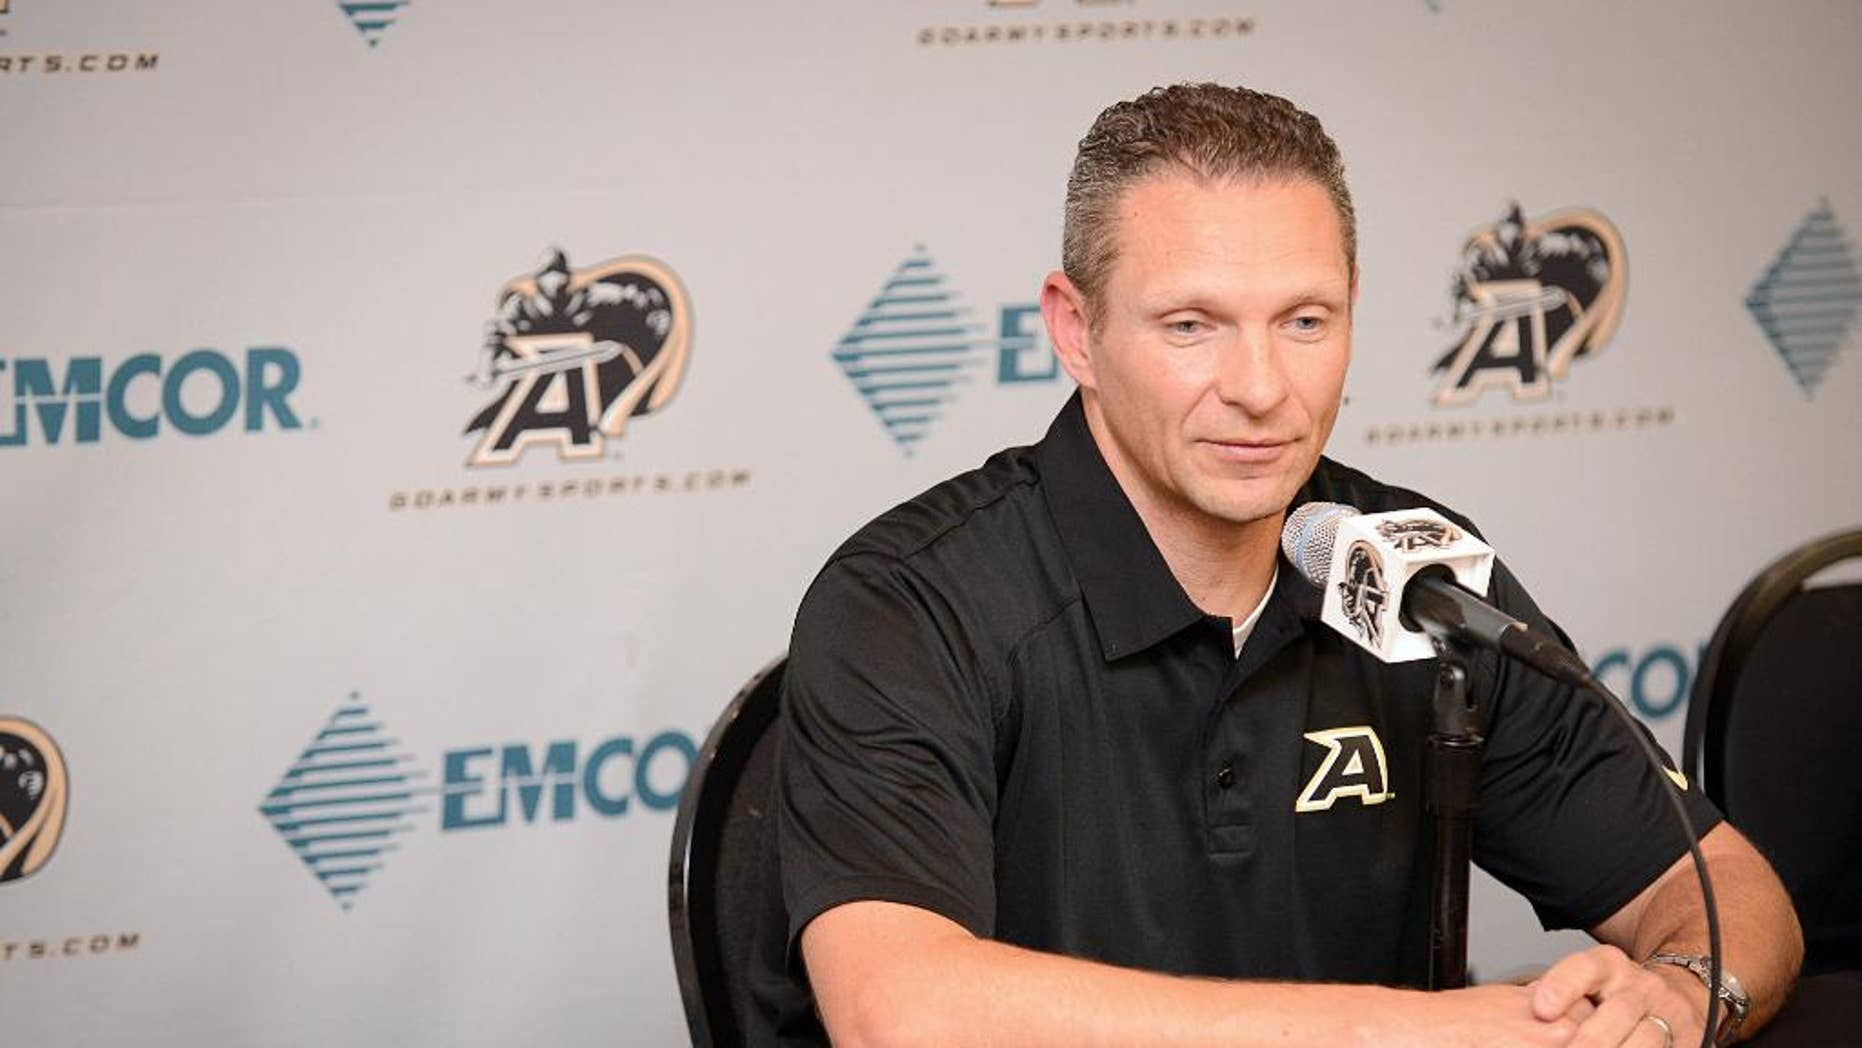 Army football head coach Jeff Monken speaks at a press coference on Tuesday, Oct. 28, 2014, in West Point, N.Y. Monken addressed his team's reported recruiting violations and the upcoming game against Air Force. (AP Photo/Steve Borland)